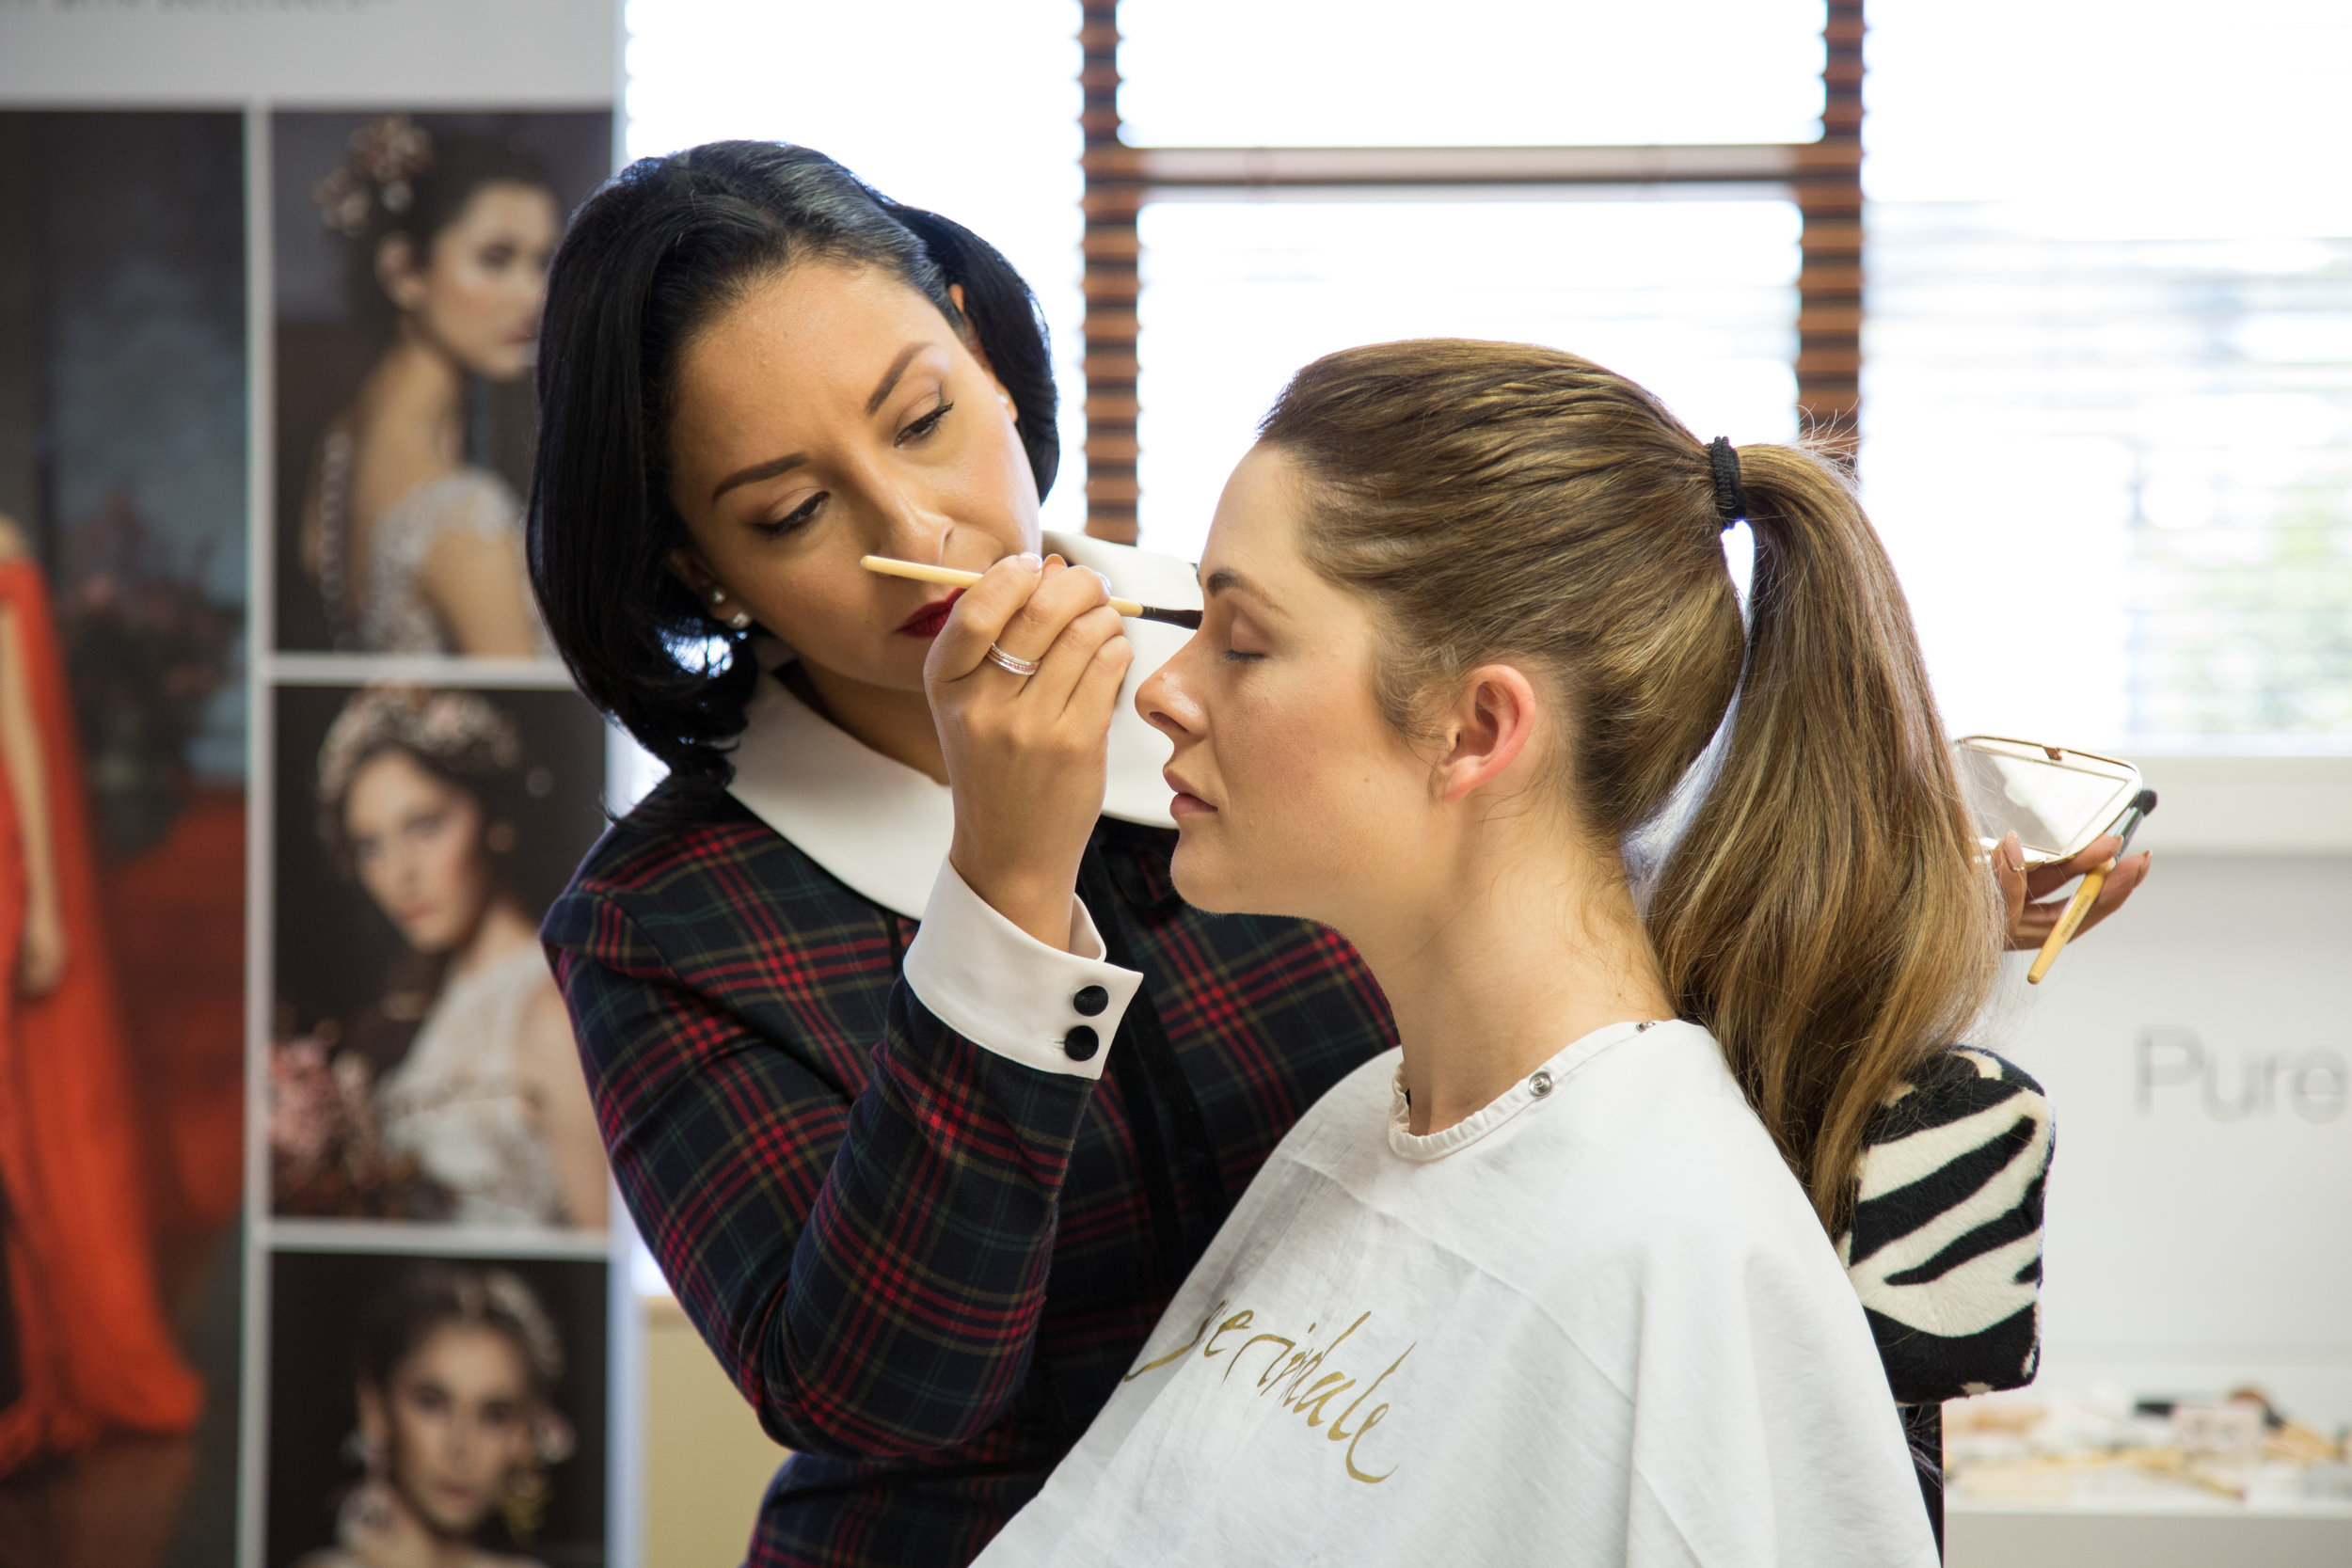 Soto-Carlisle's taking a Jane Iredale masterclass in Auckland